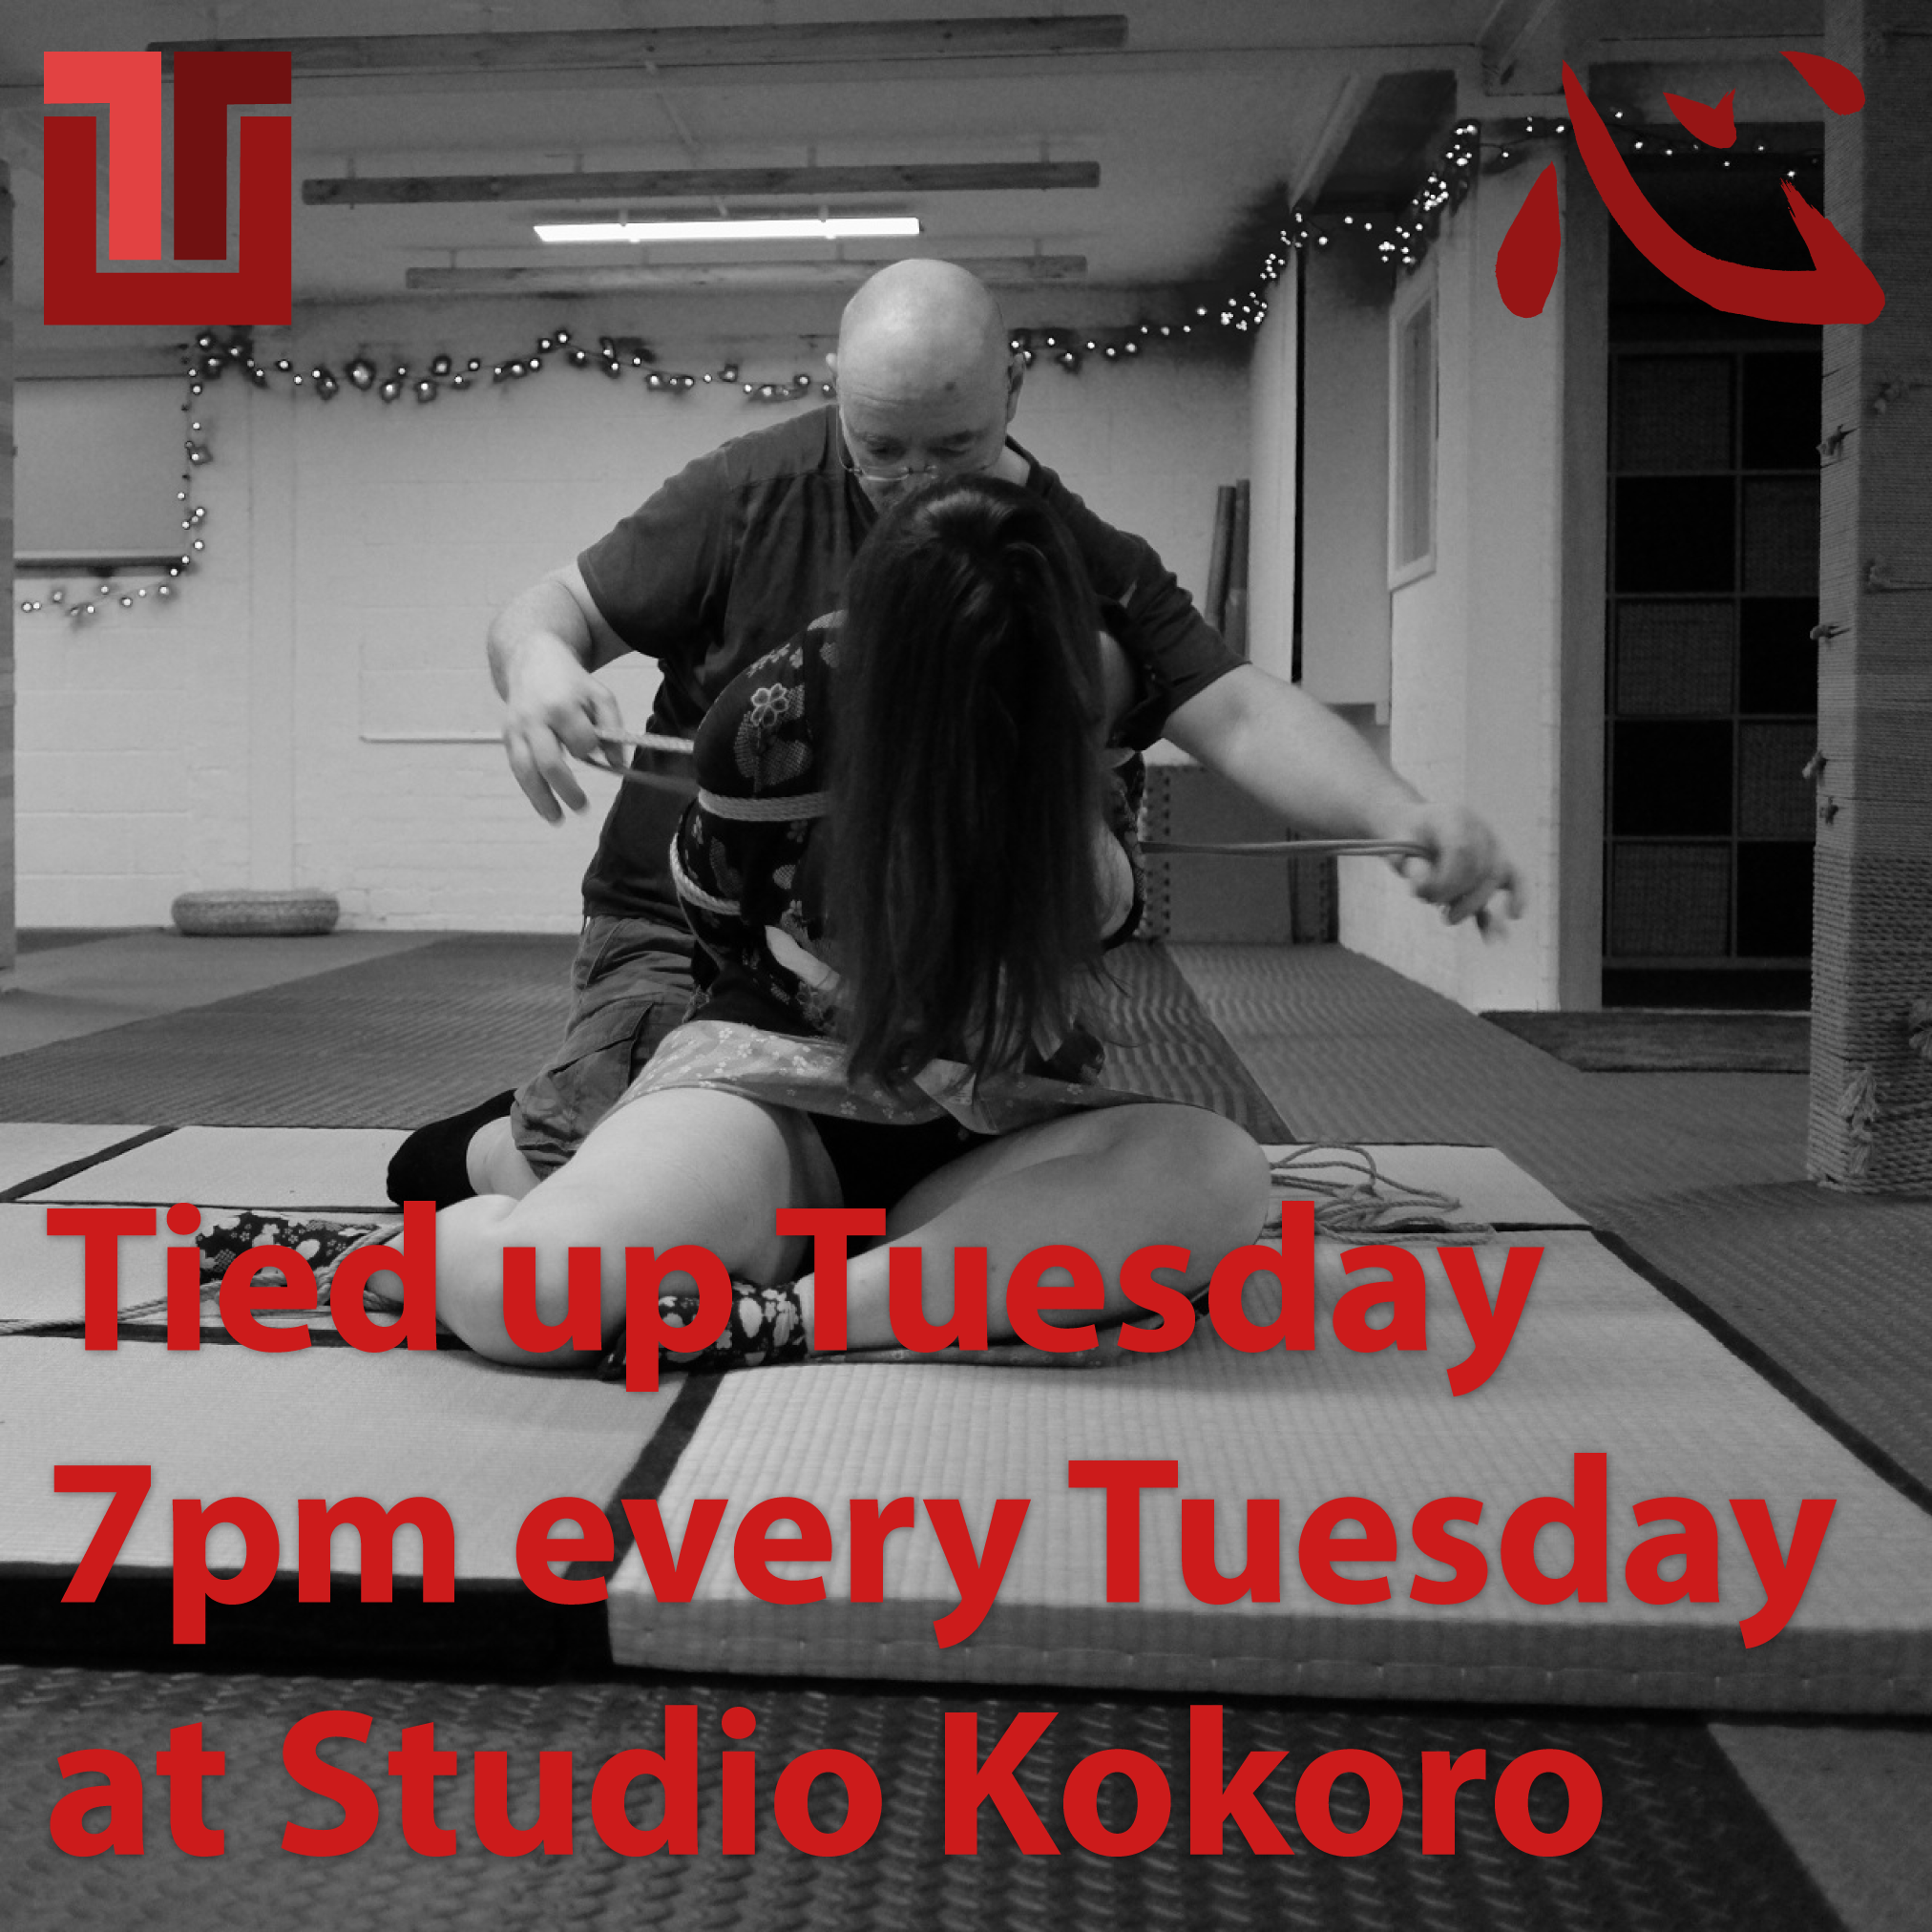 Tied up Tuesday at Studio Kokoro